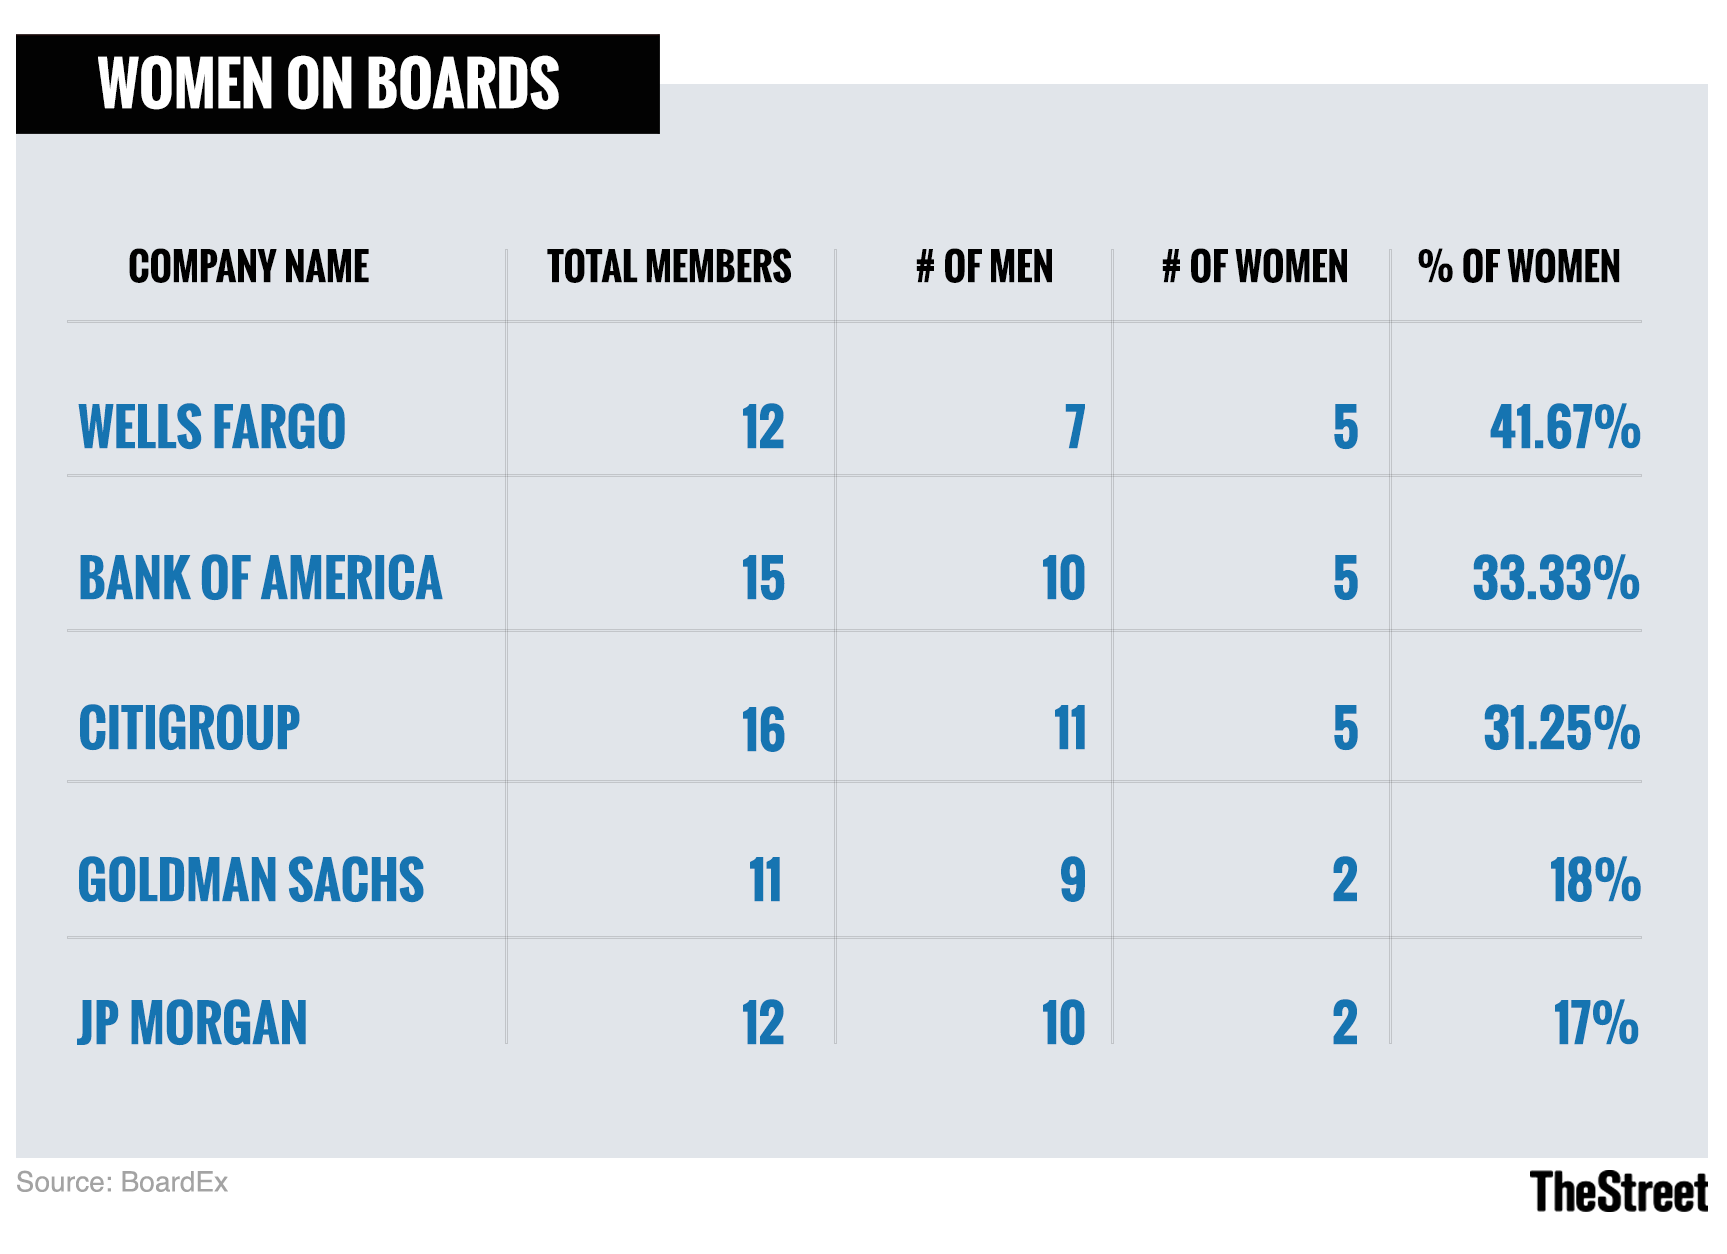 JPMorgan ranks below rival U.S. banks in terms of the representation of women on the board of directors.